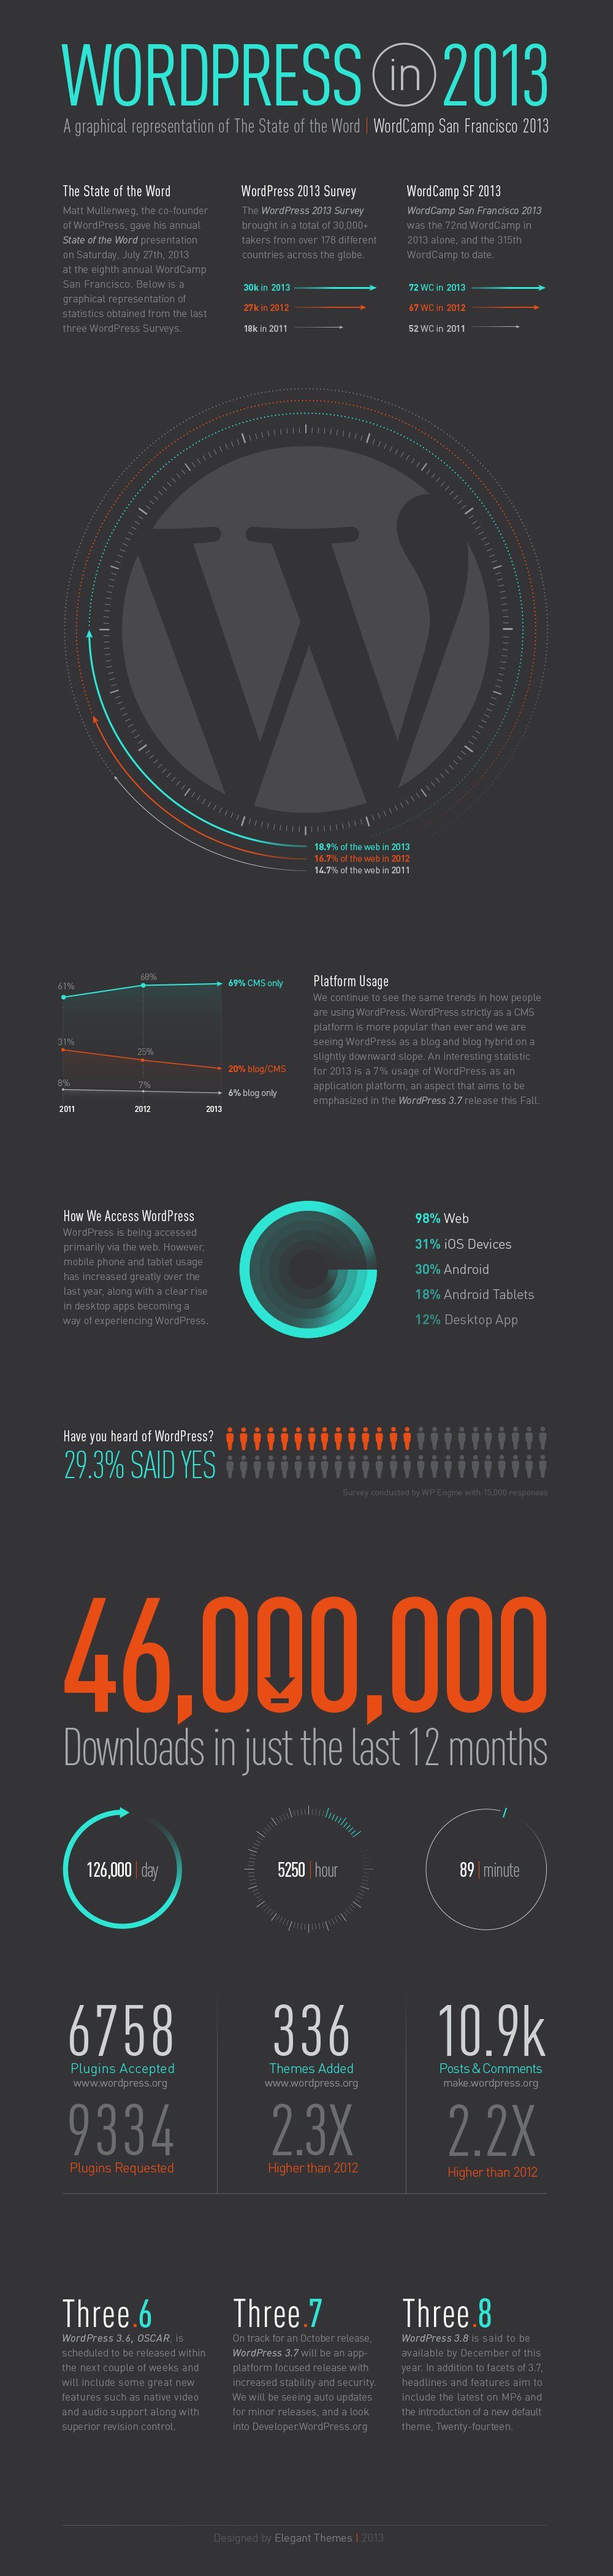 wordpress-infographic-2013